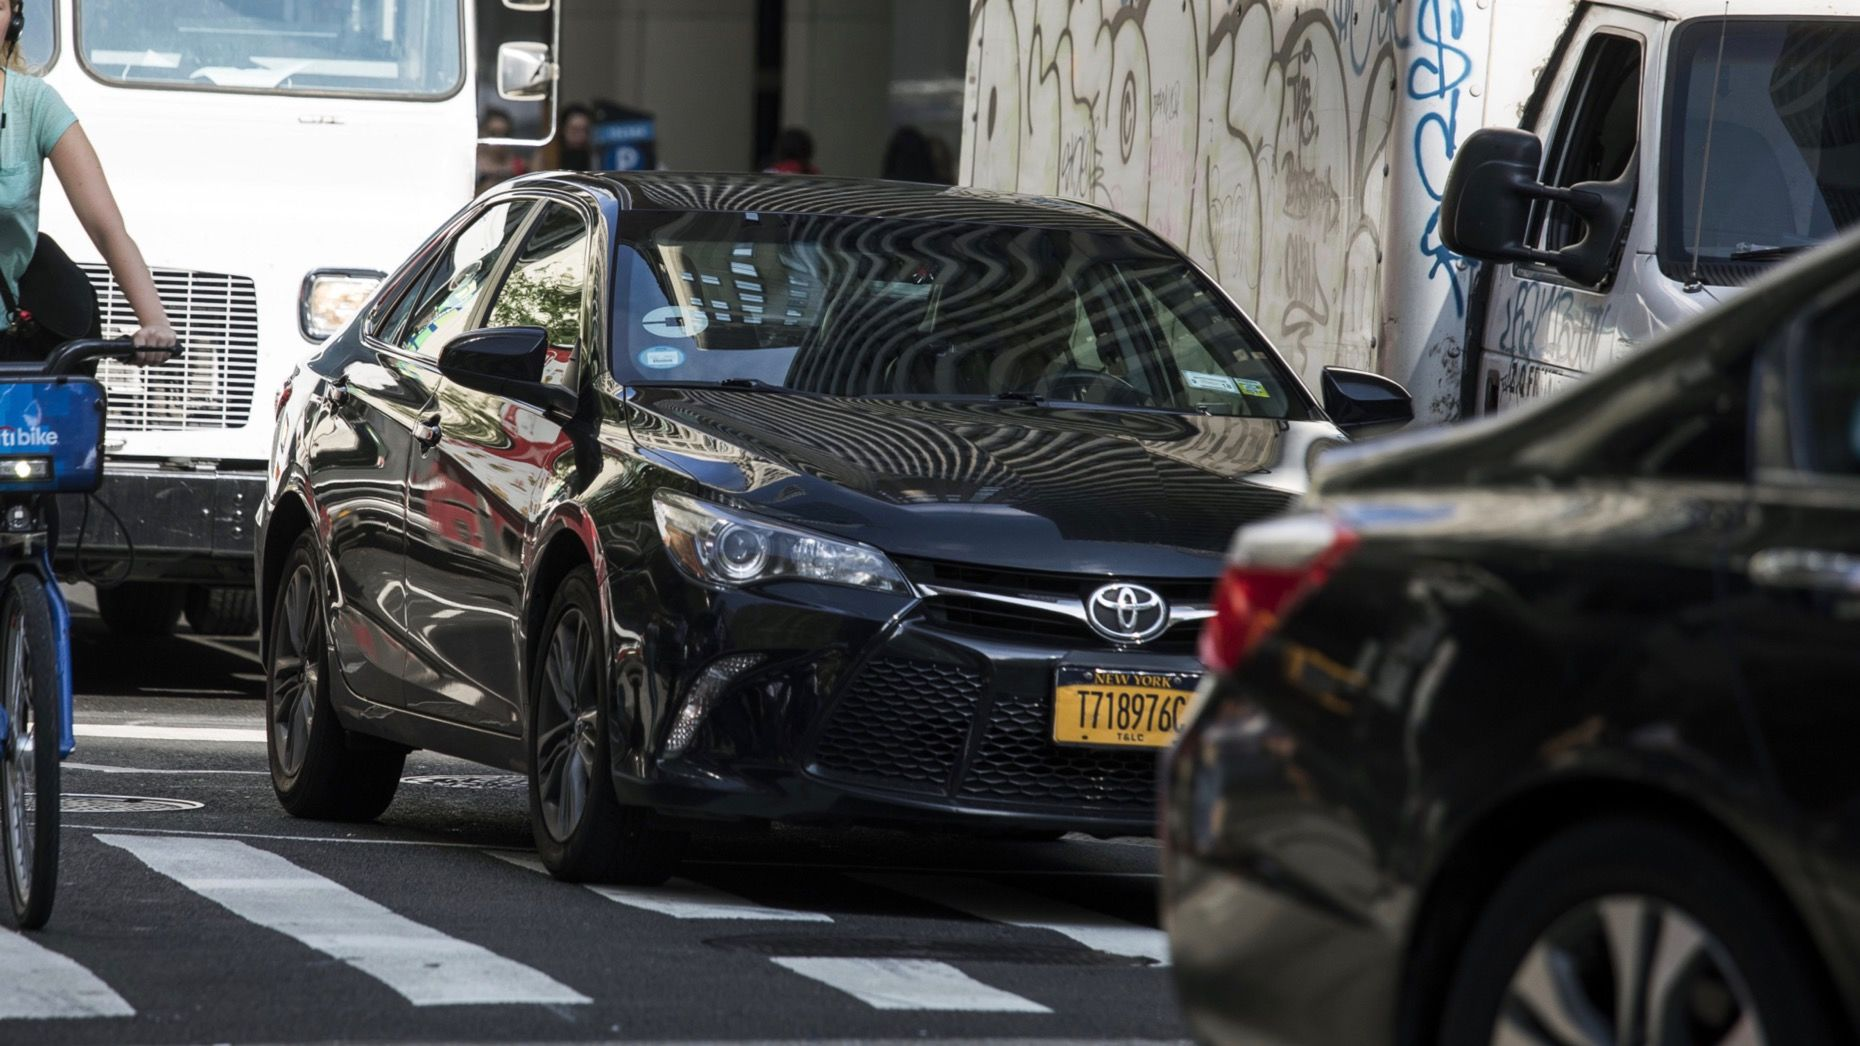 An Uber vehicle in New York City in 2018. Photo: Bloomberg